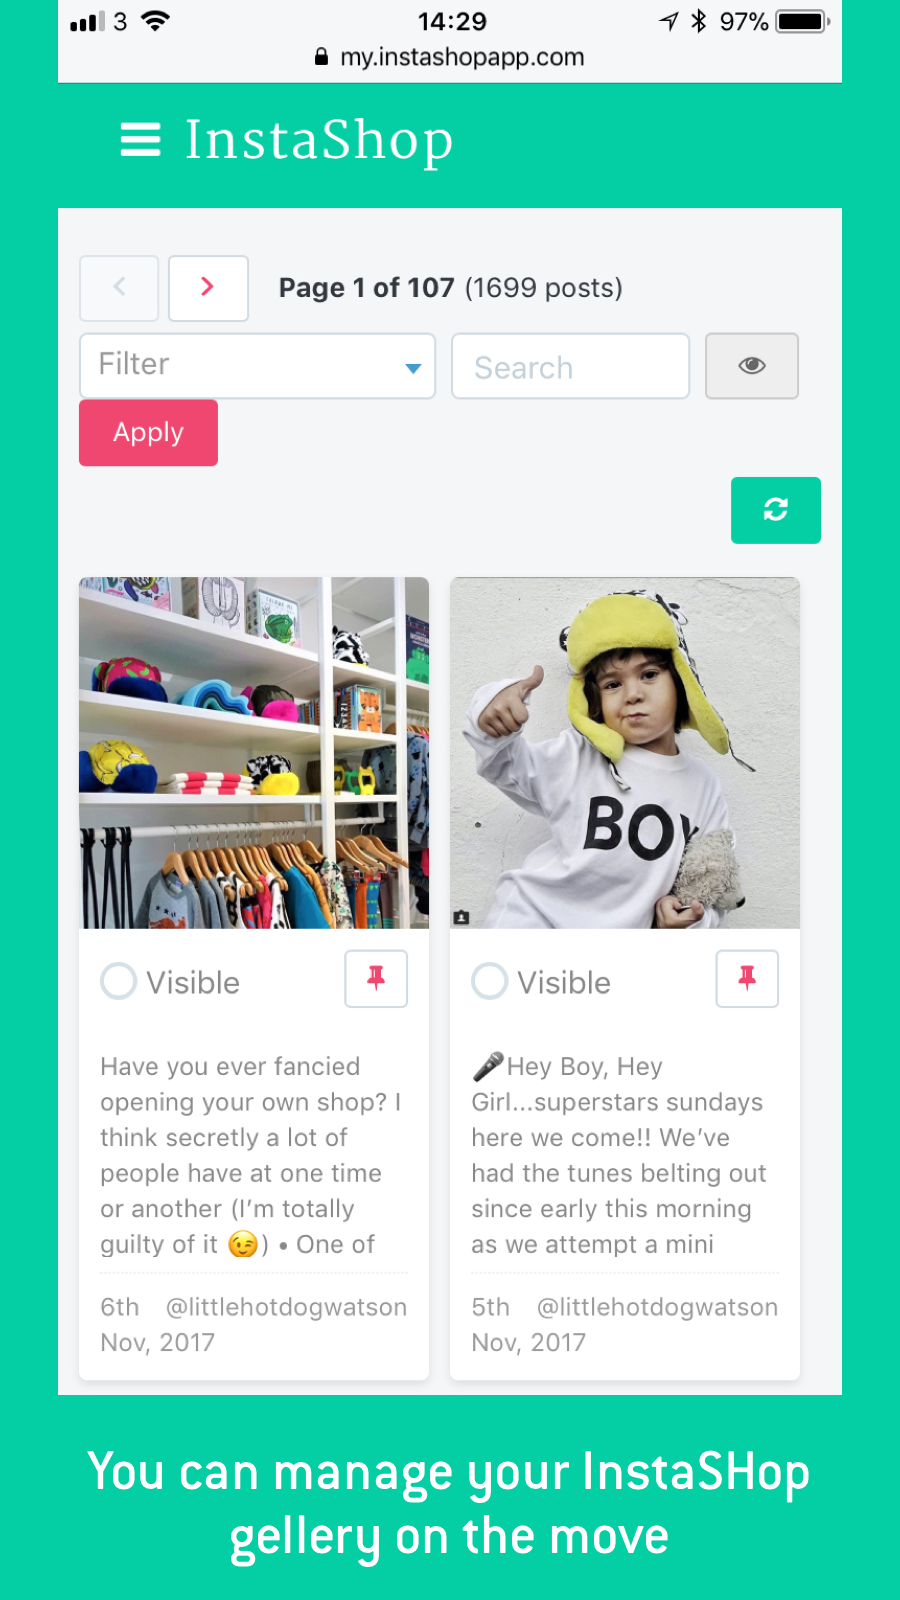 It's easy to manage the pictures you display in your InstaShop g